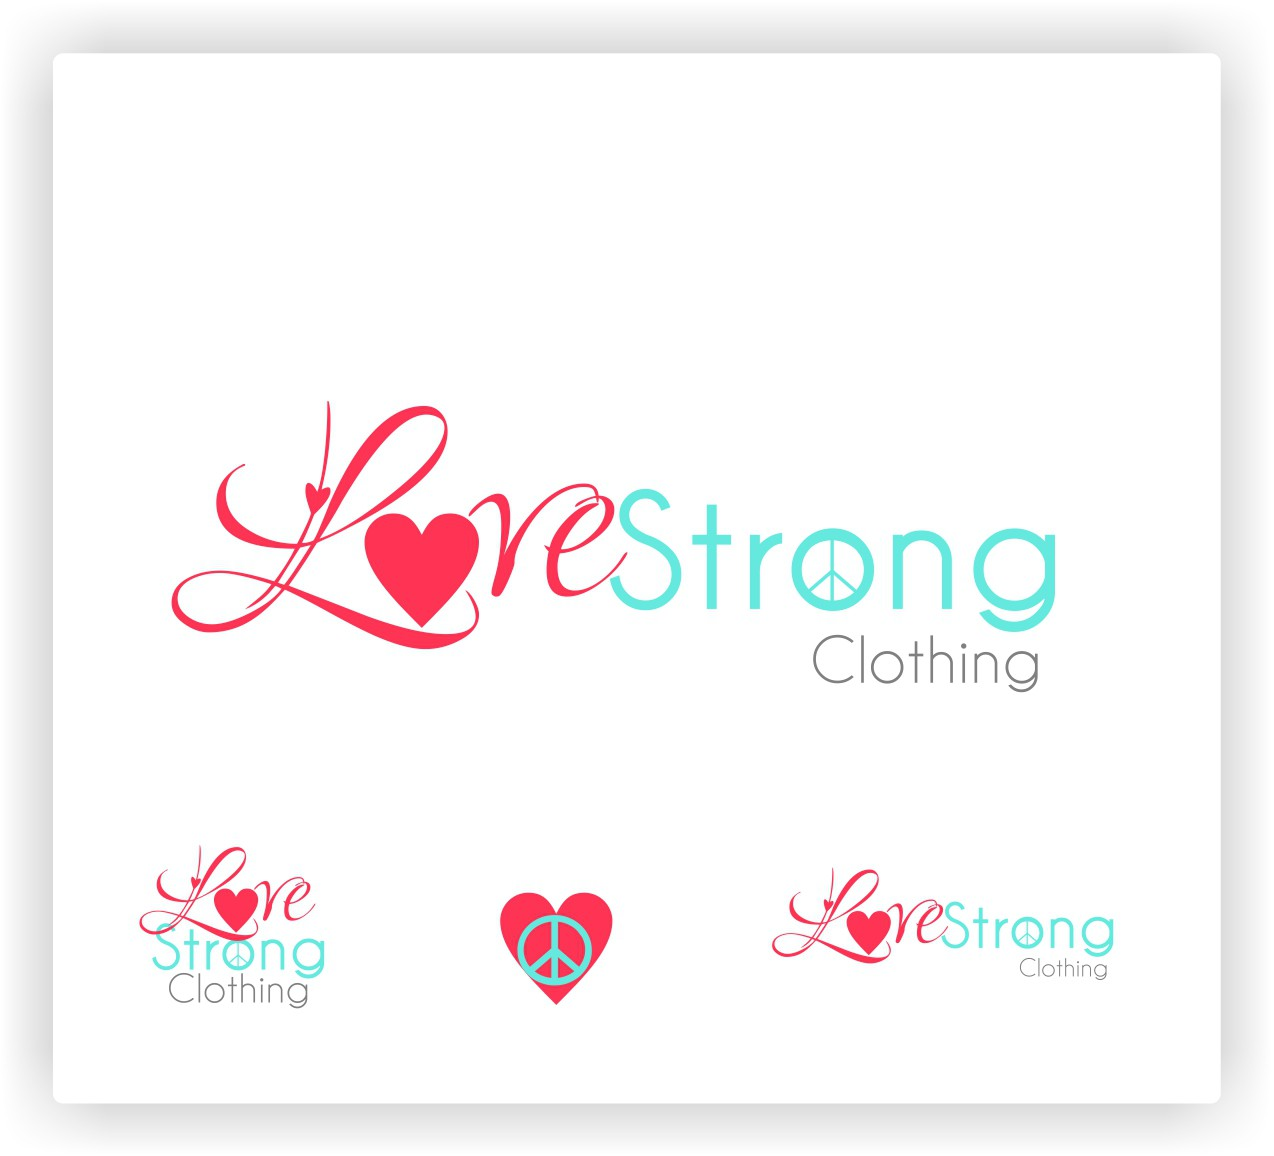 Help LoveStrong Clothing with a new logo